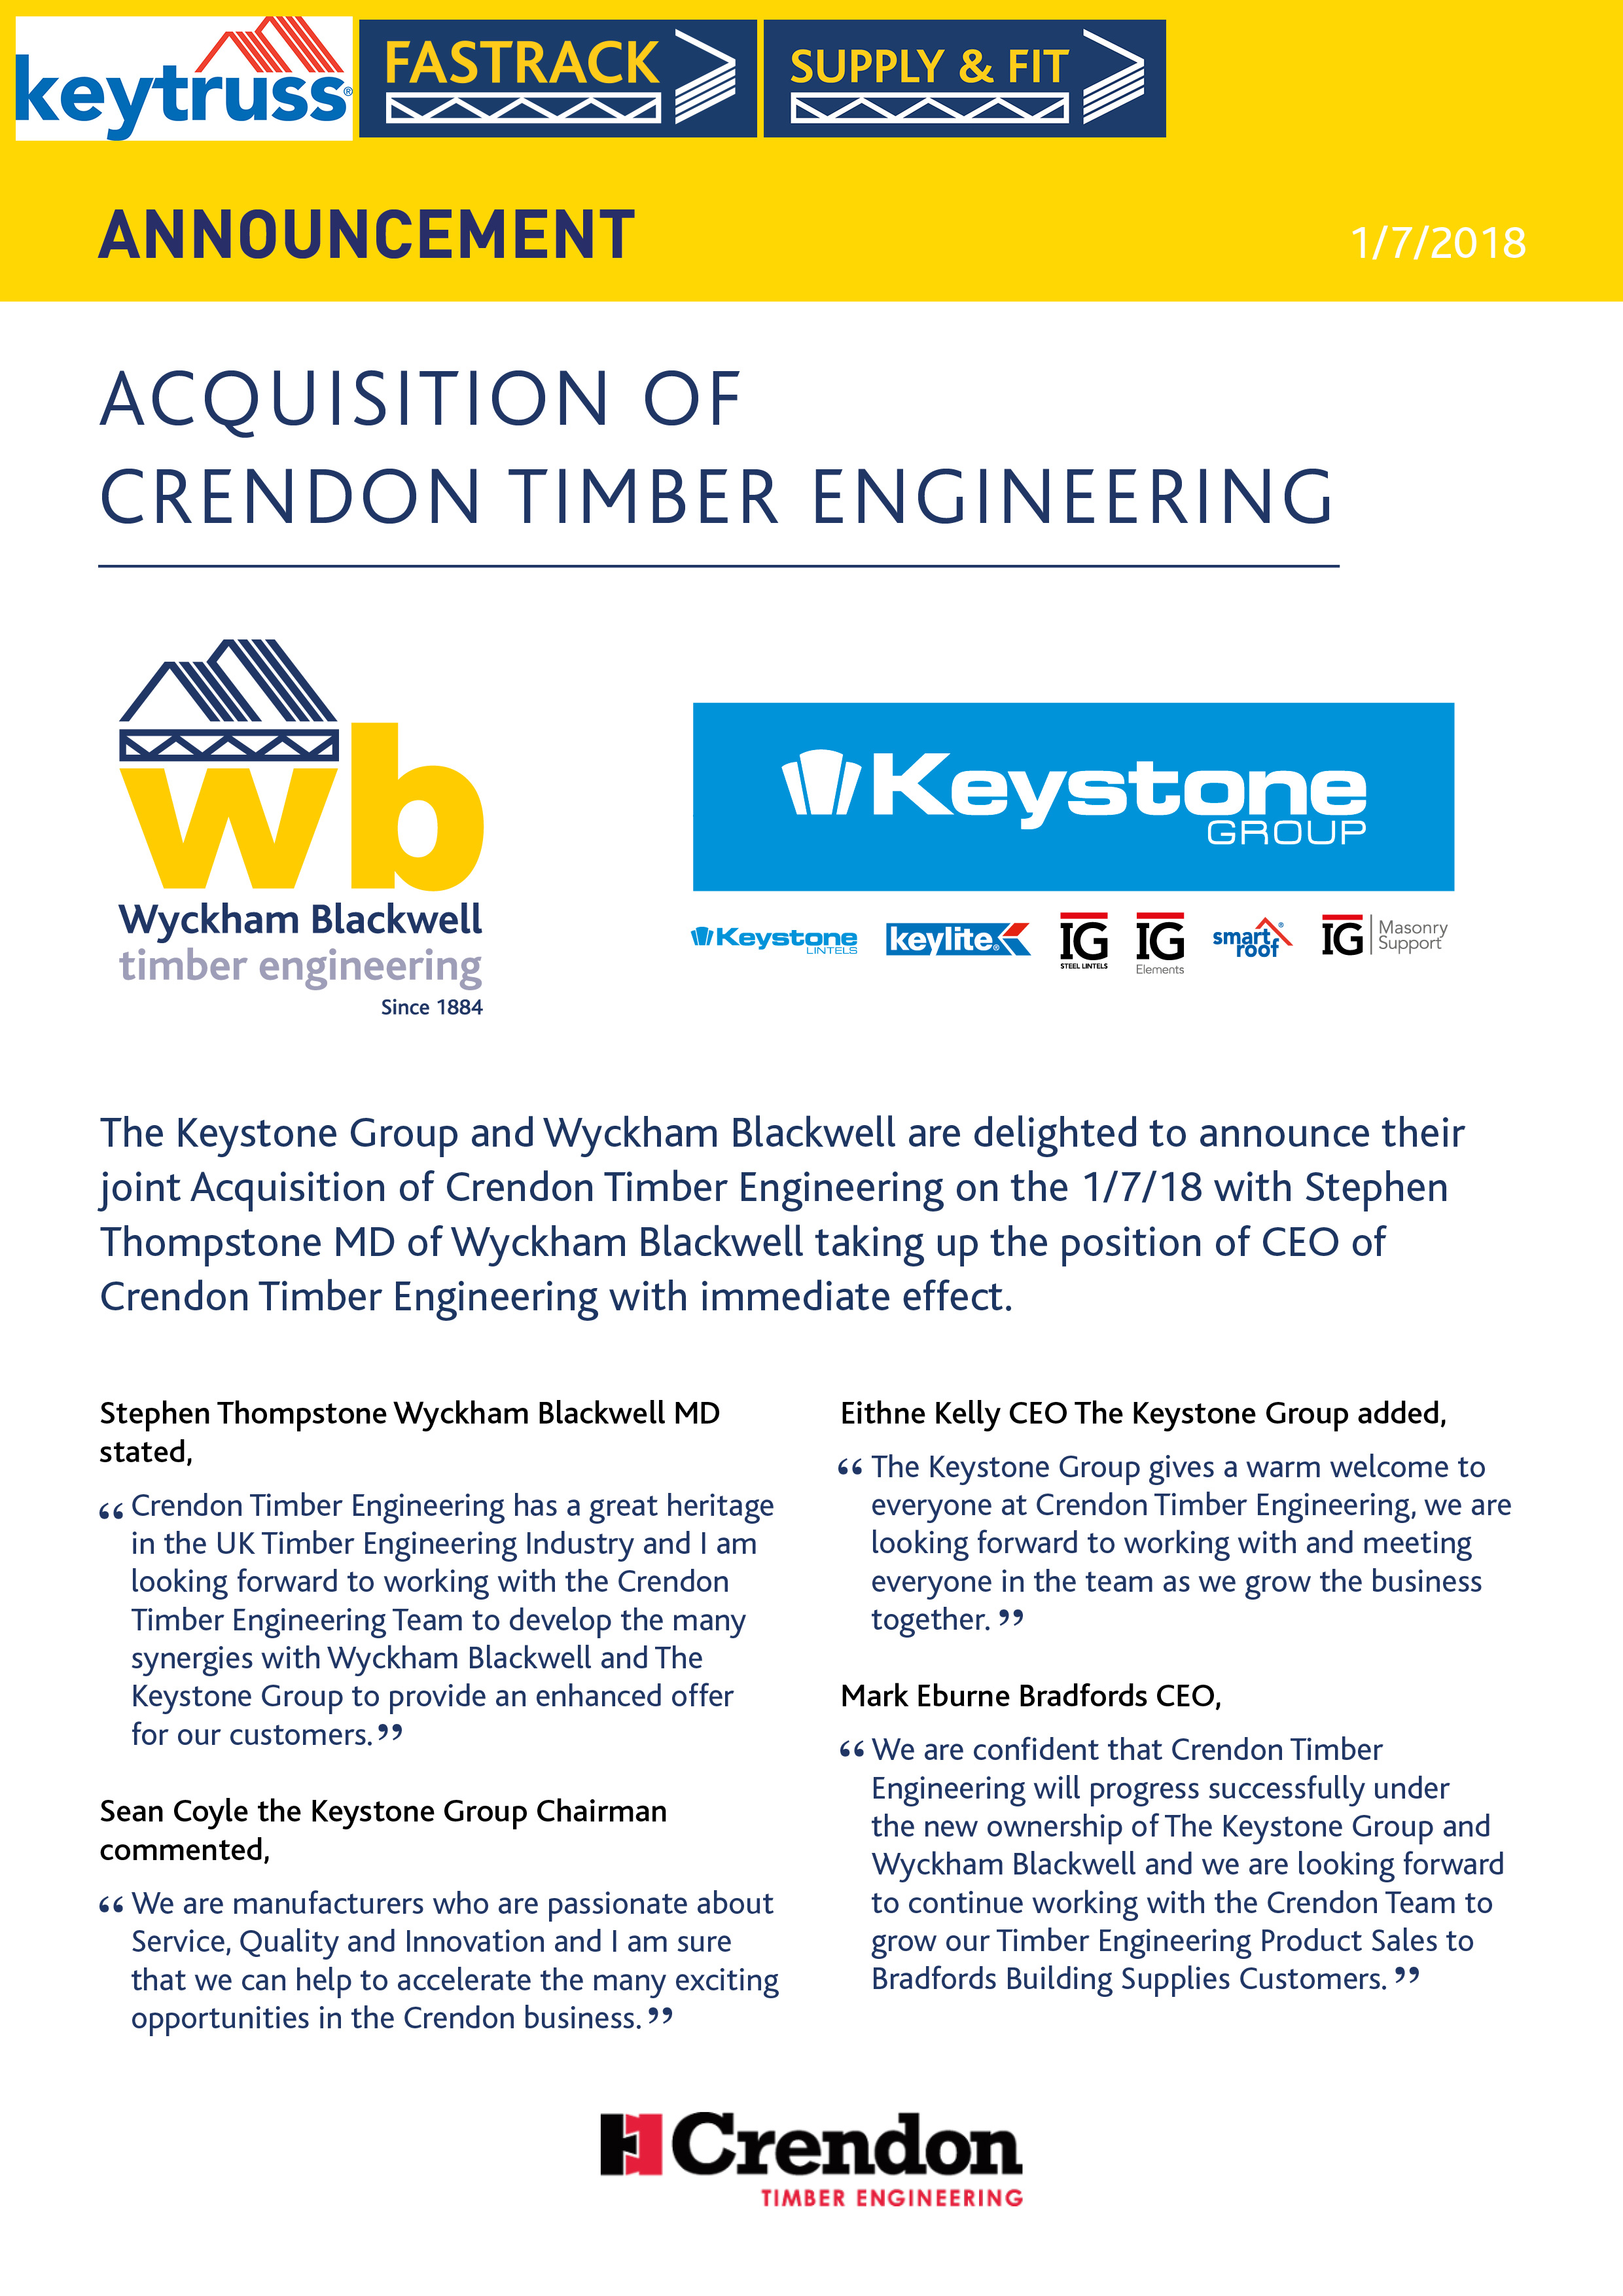 Announcement Of The Acquisition Of Crendon Timber